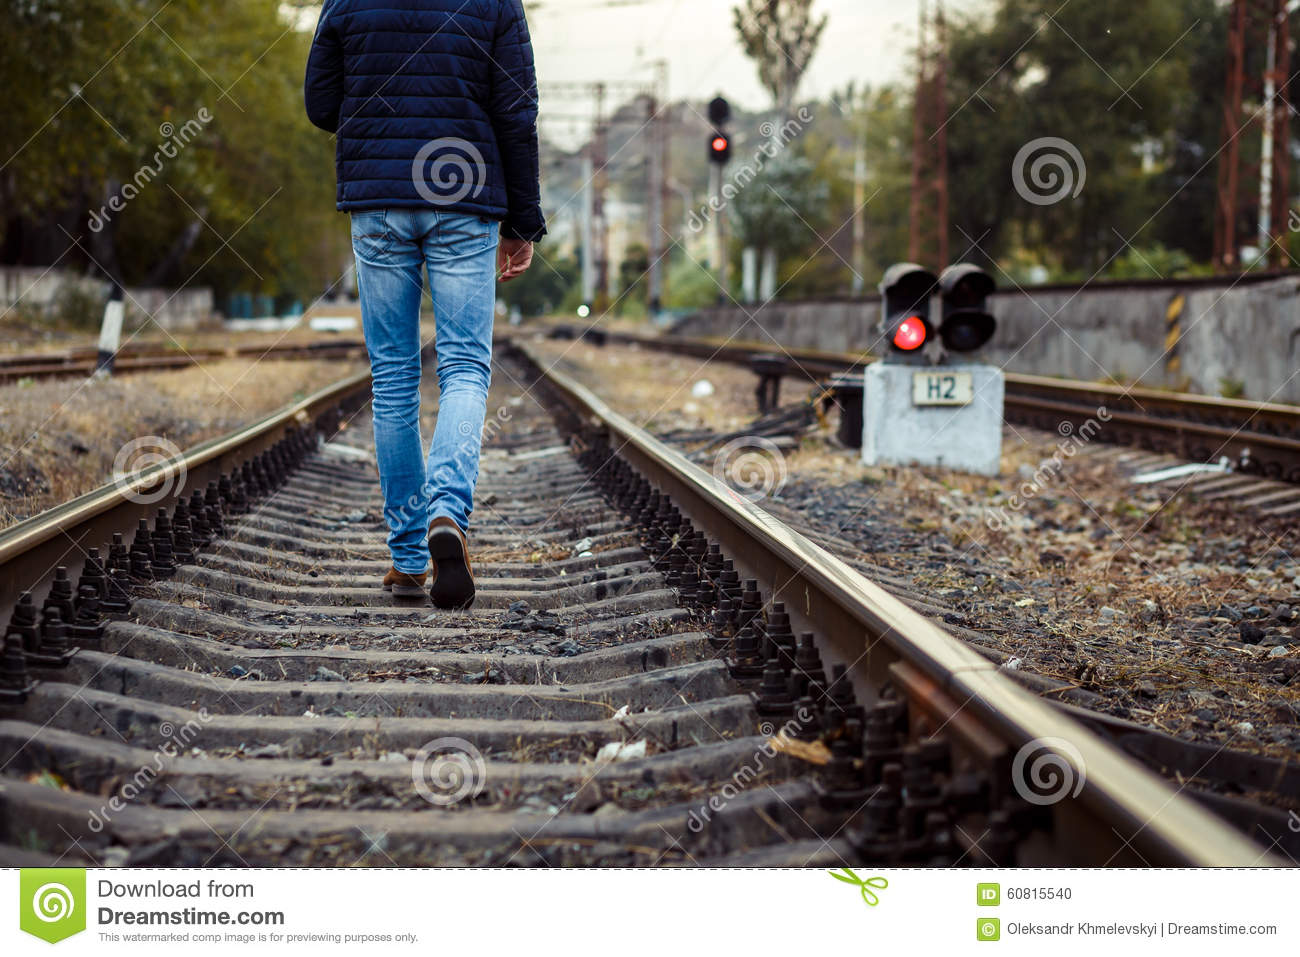 Legs Of Person Walking On Train Tracks Stock Photo - Image: 60815540